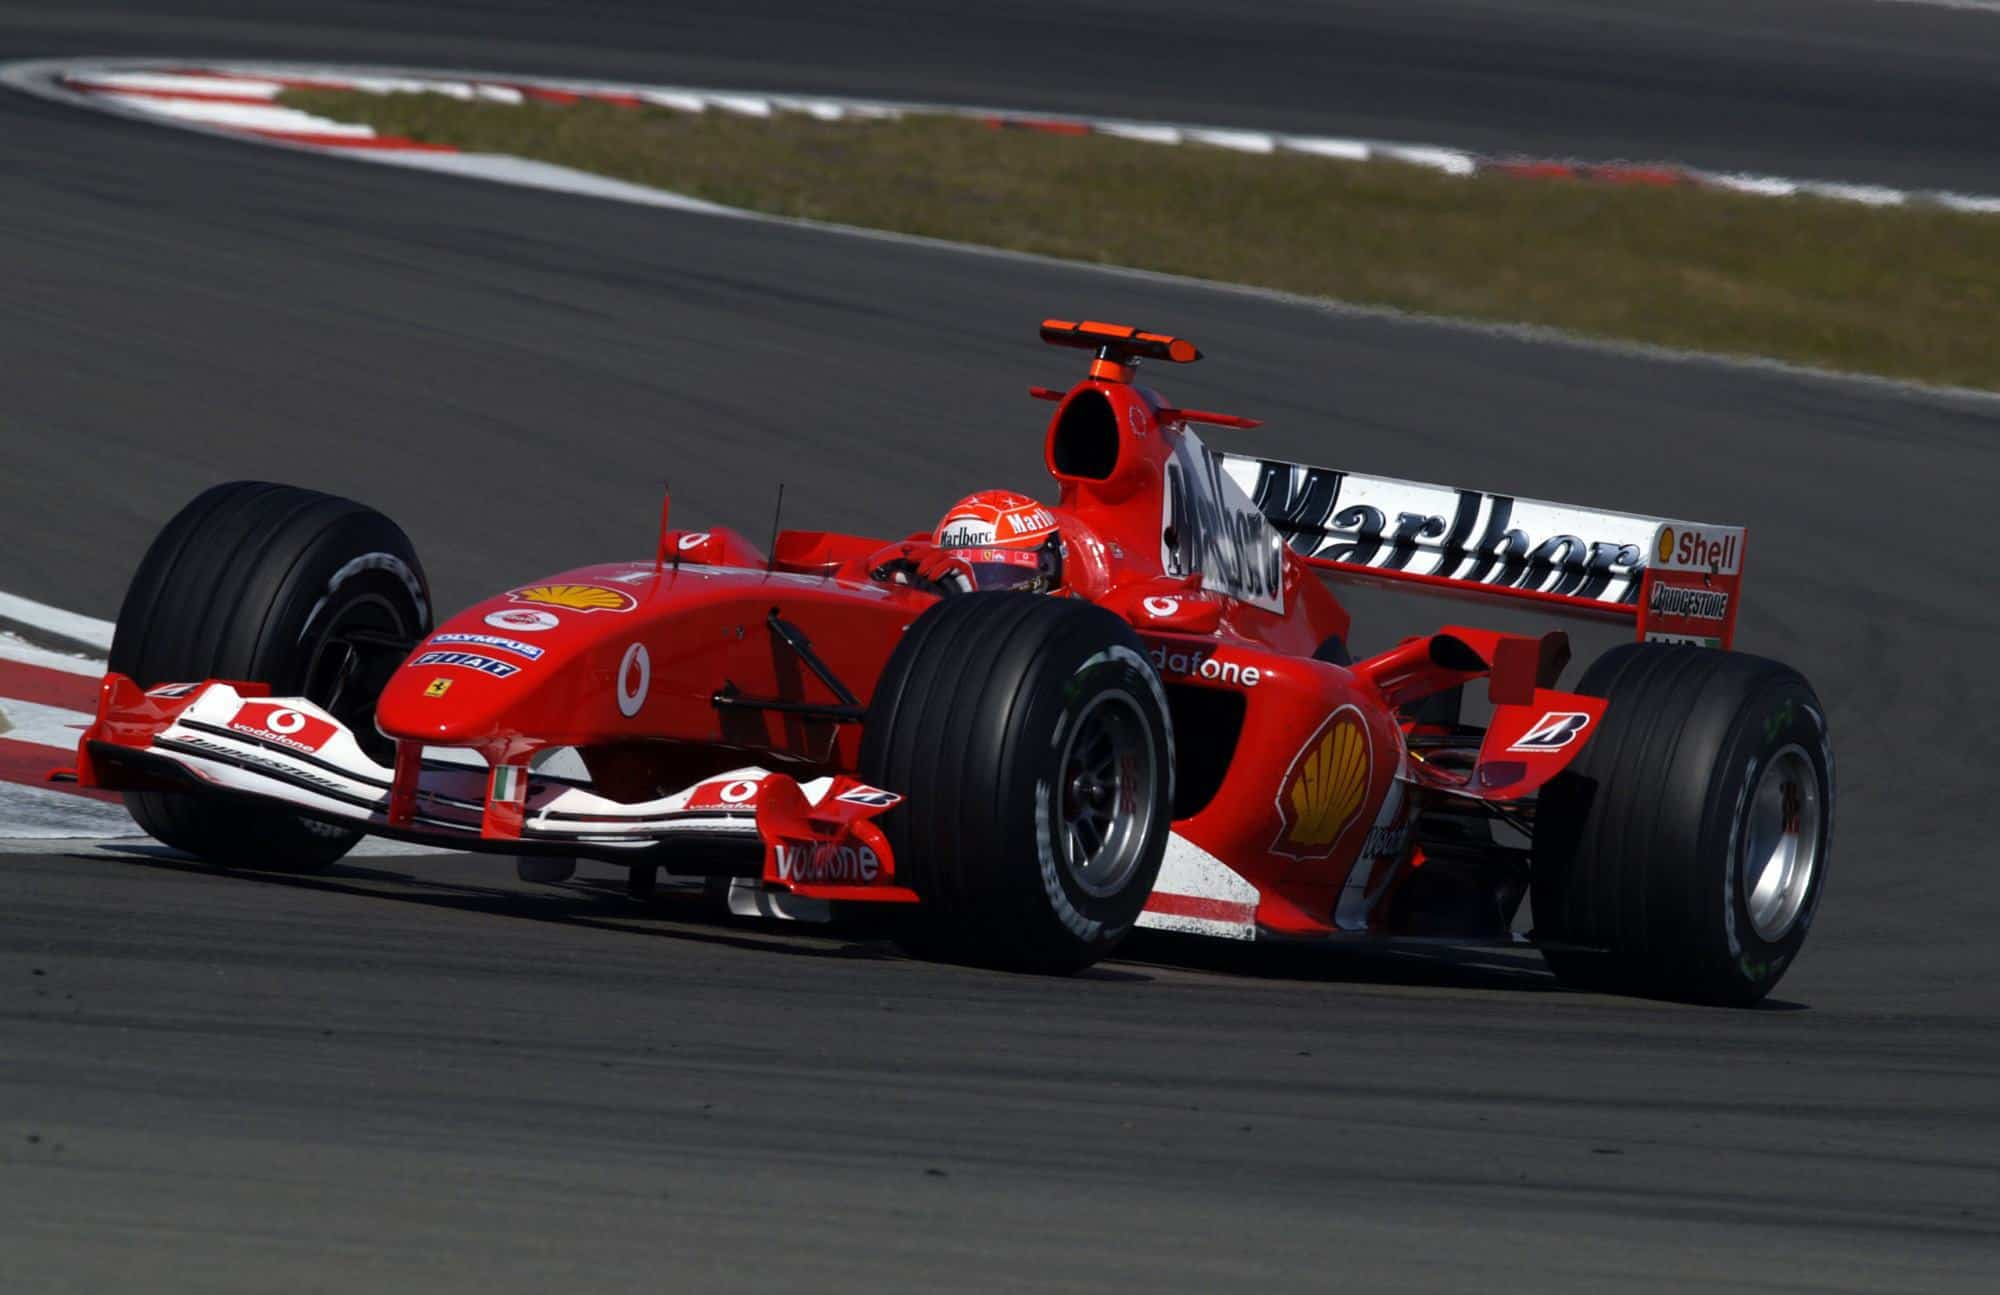 2004 European GP – Schumacher dominates in his 200th F1 race